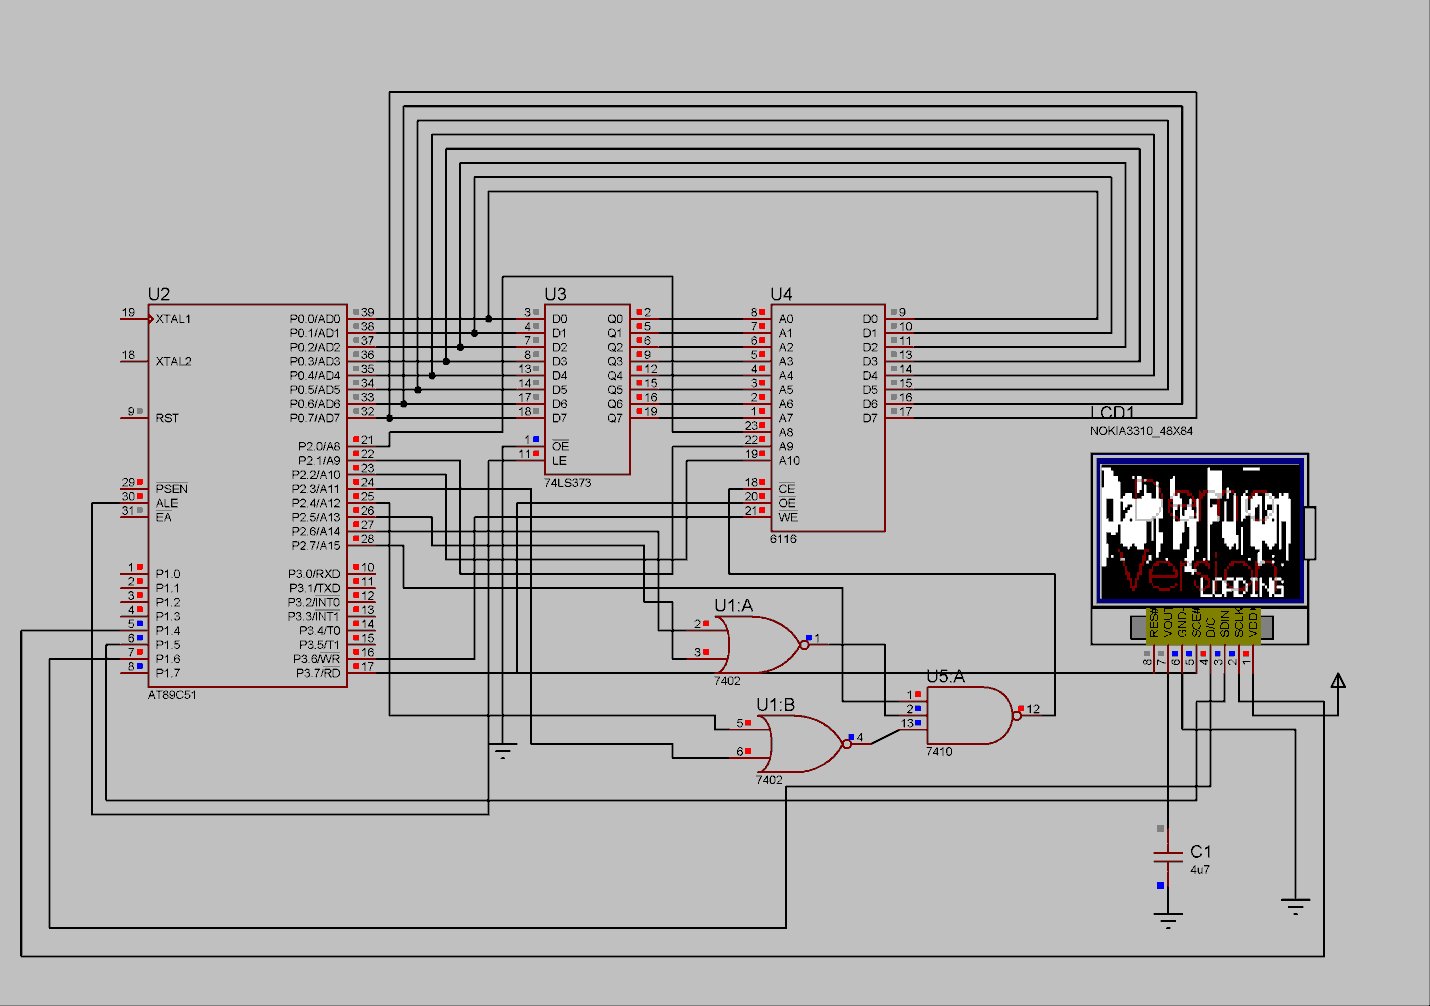 Lcd Paint With Nokia 3310 Screen And 8051 Microcontroller Dmc Inc Proteus Circuit Simulation Note That There Is No Mouse In This Schematic Because I Couldnt Find A Model For